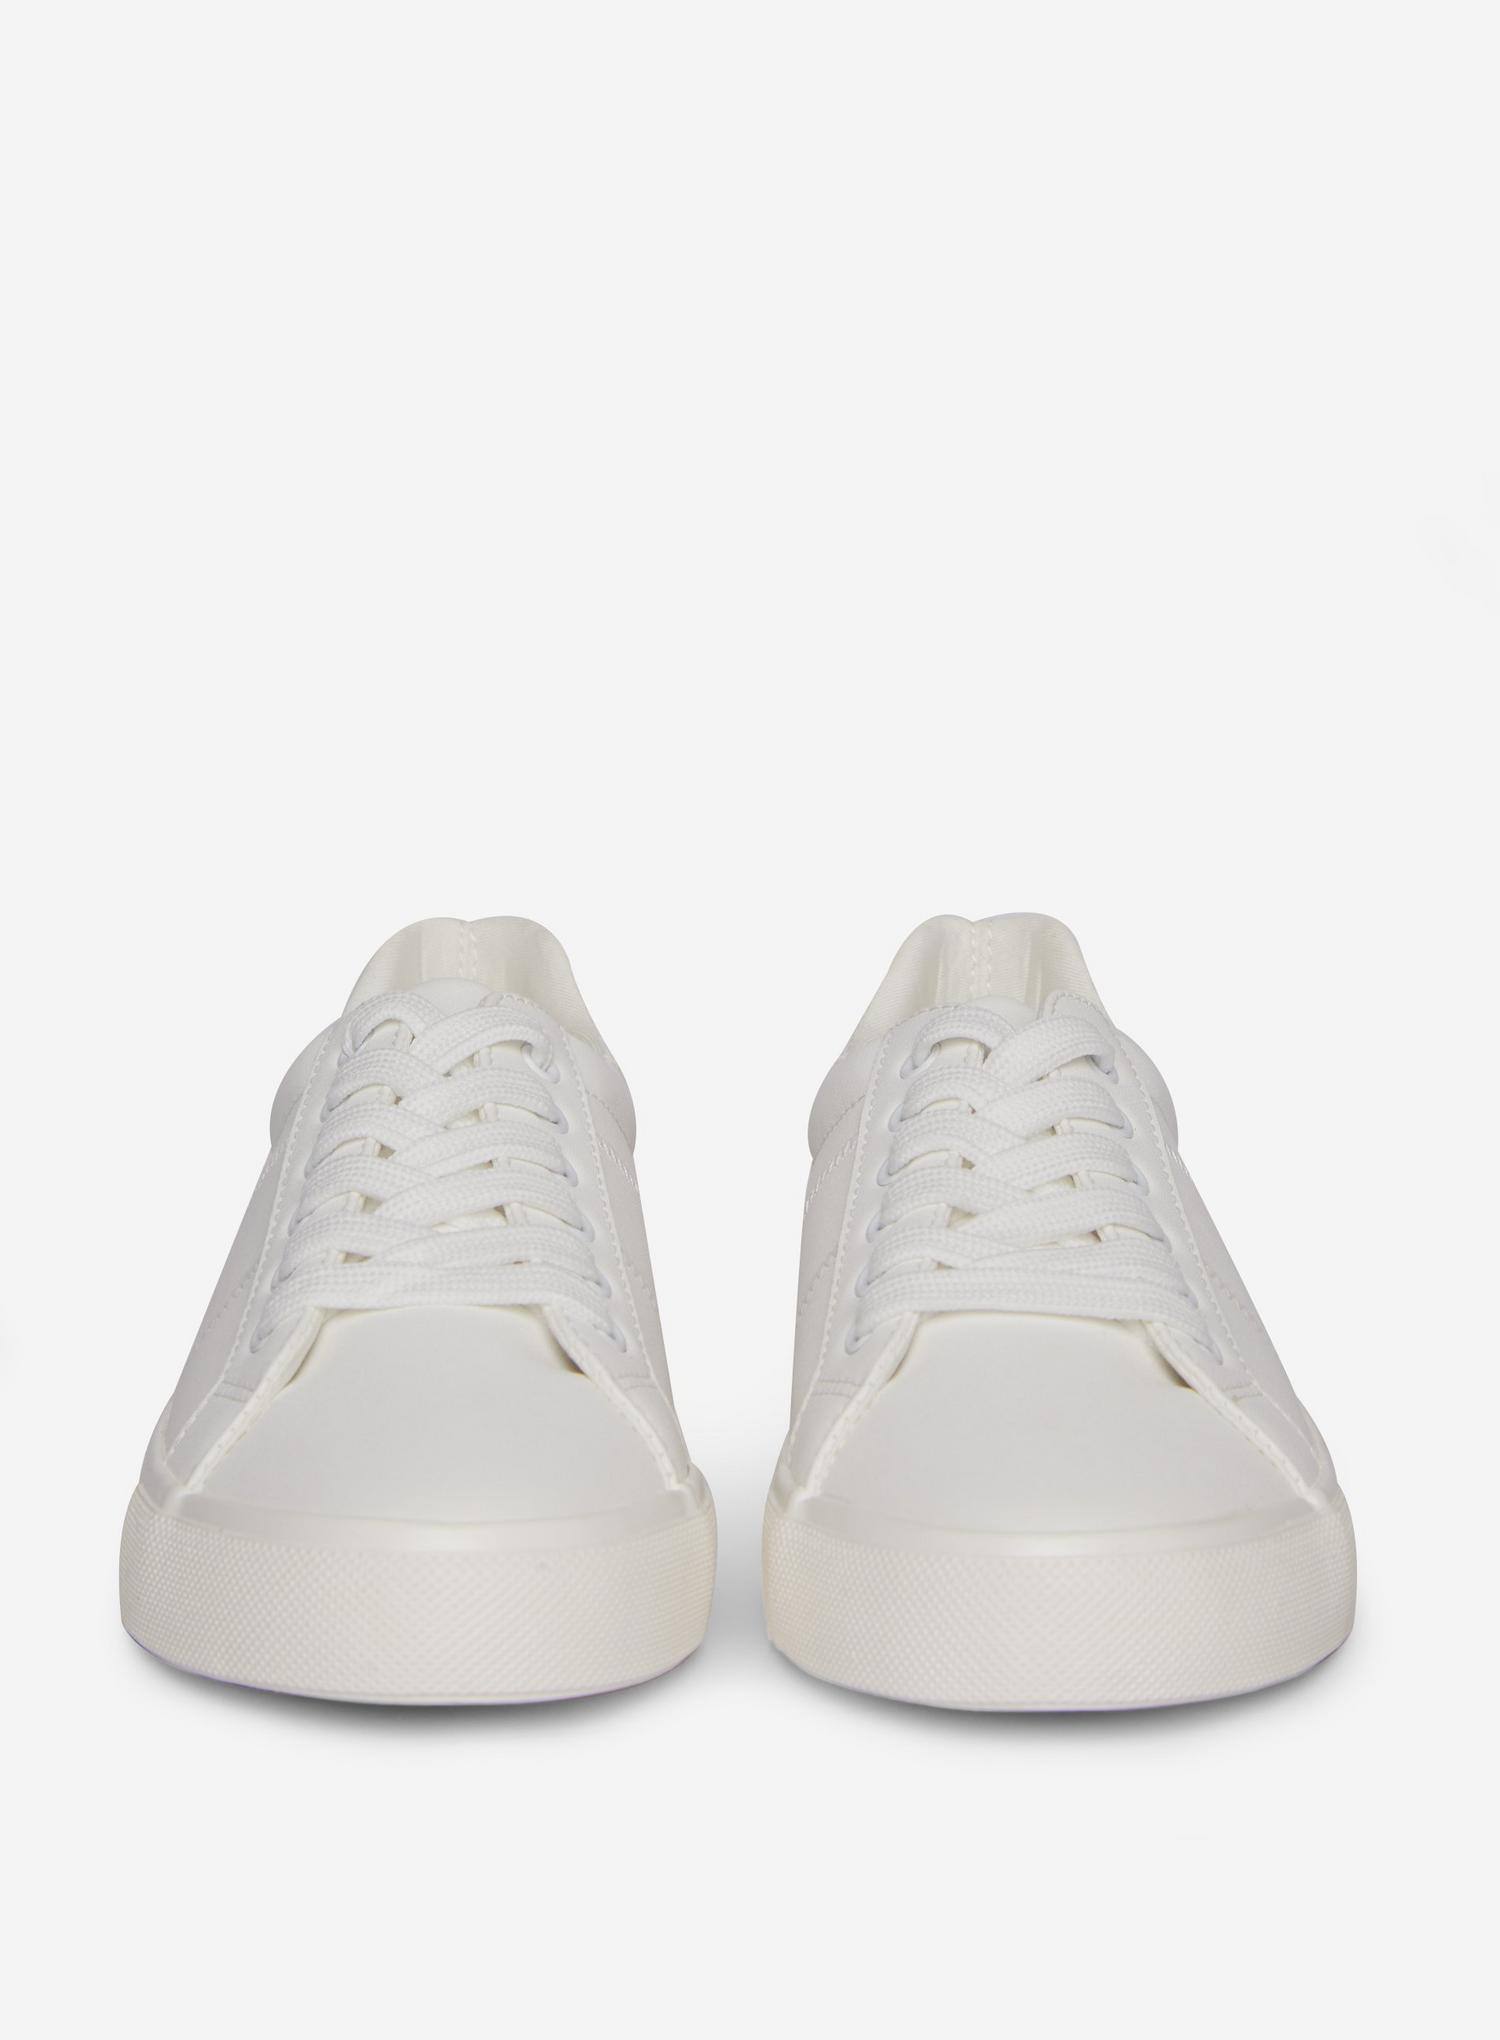 173 White Ink Trainers image number 3